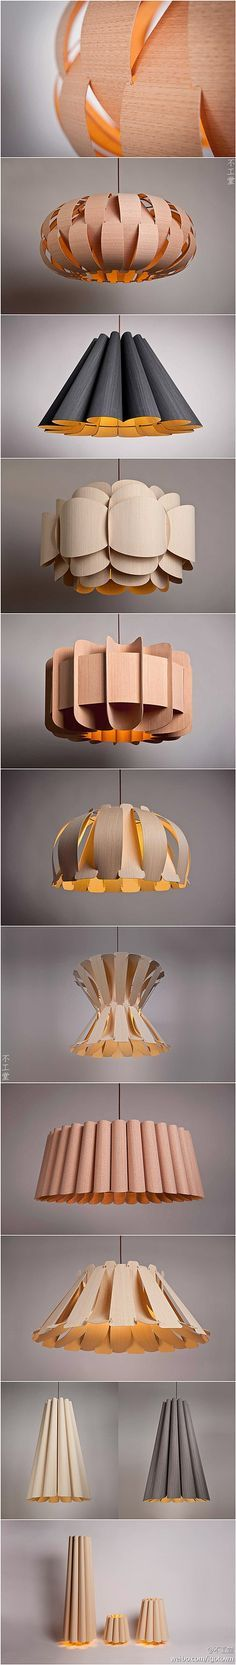 Beautiful cut and folded paper (mostly) pendant lamps. @Naomi Francois Francois Kendall might like this.